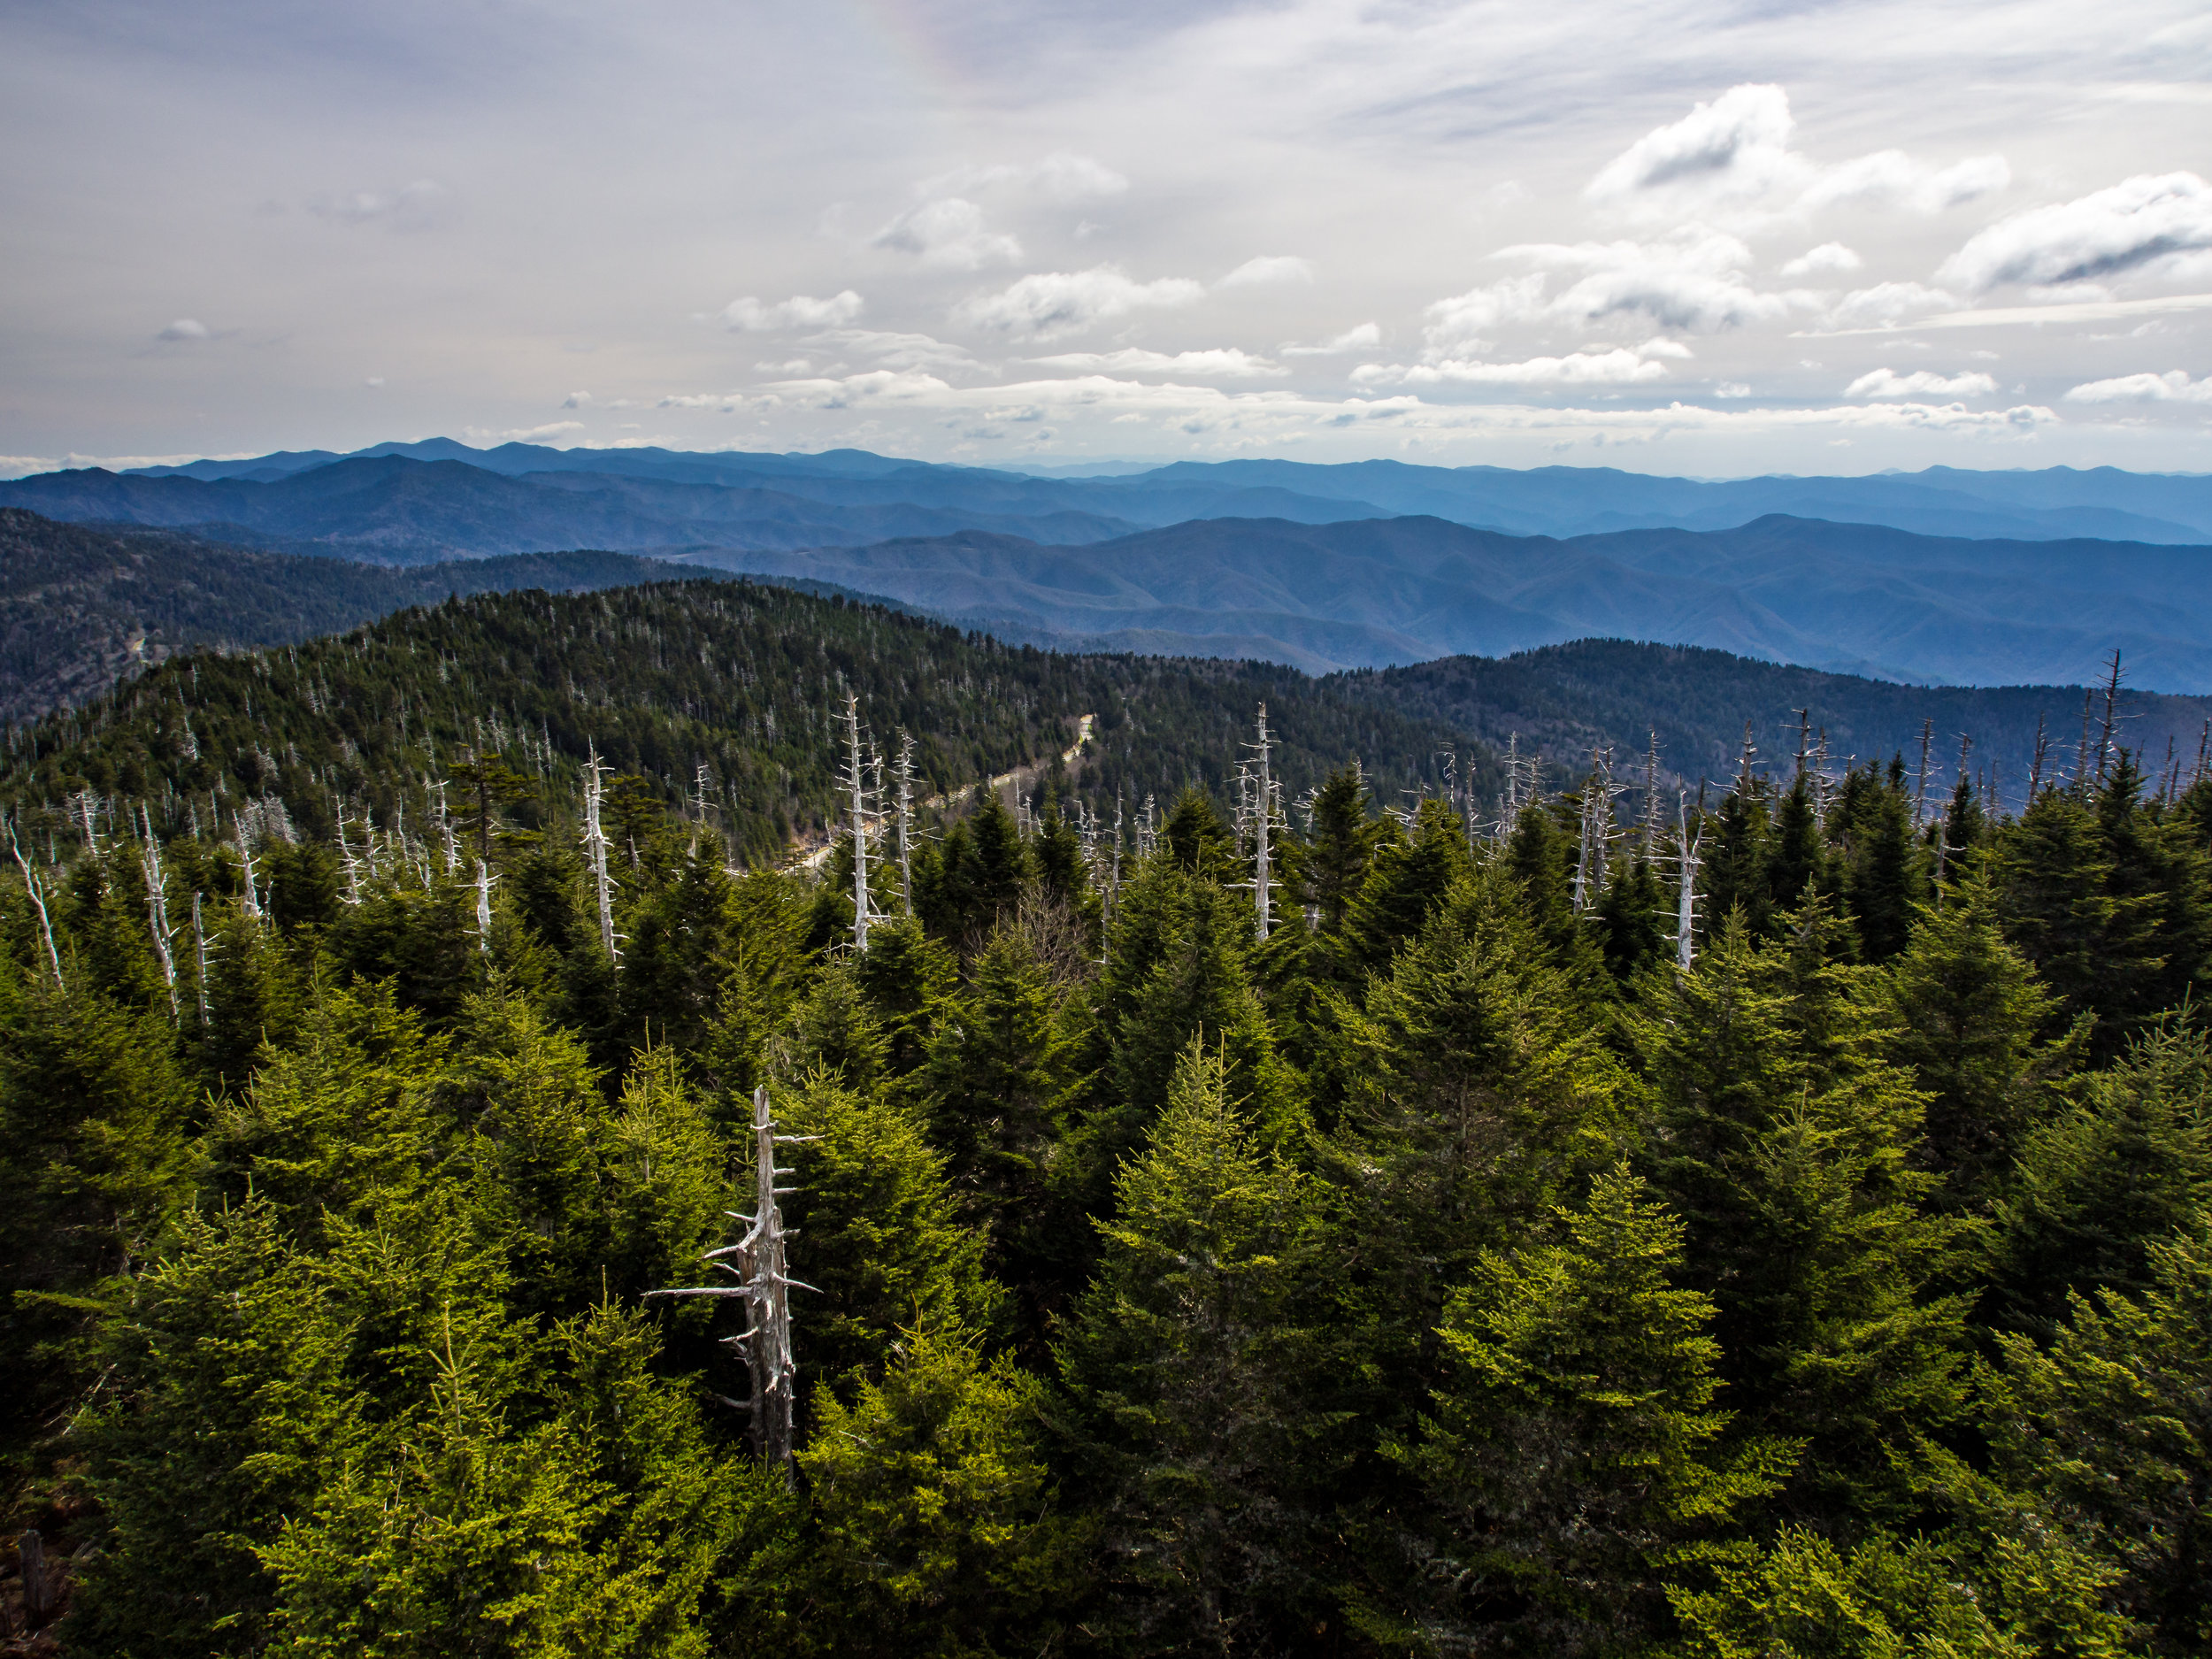 The view from the observation tower on Clingmans Dome.